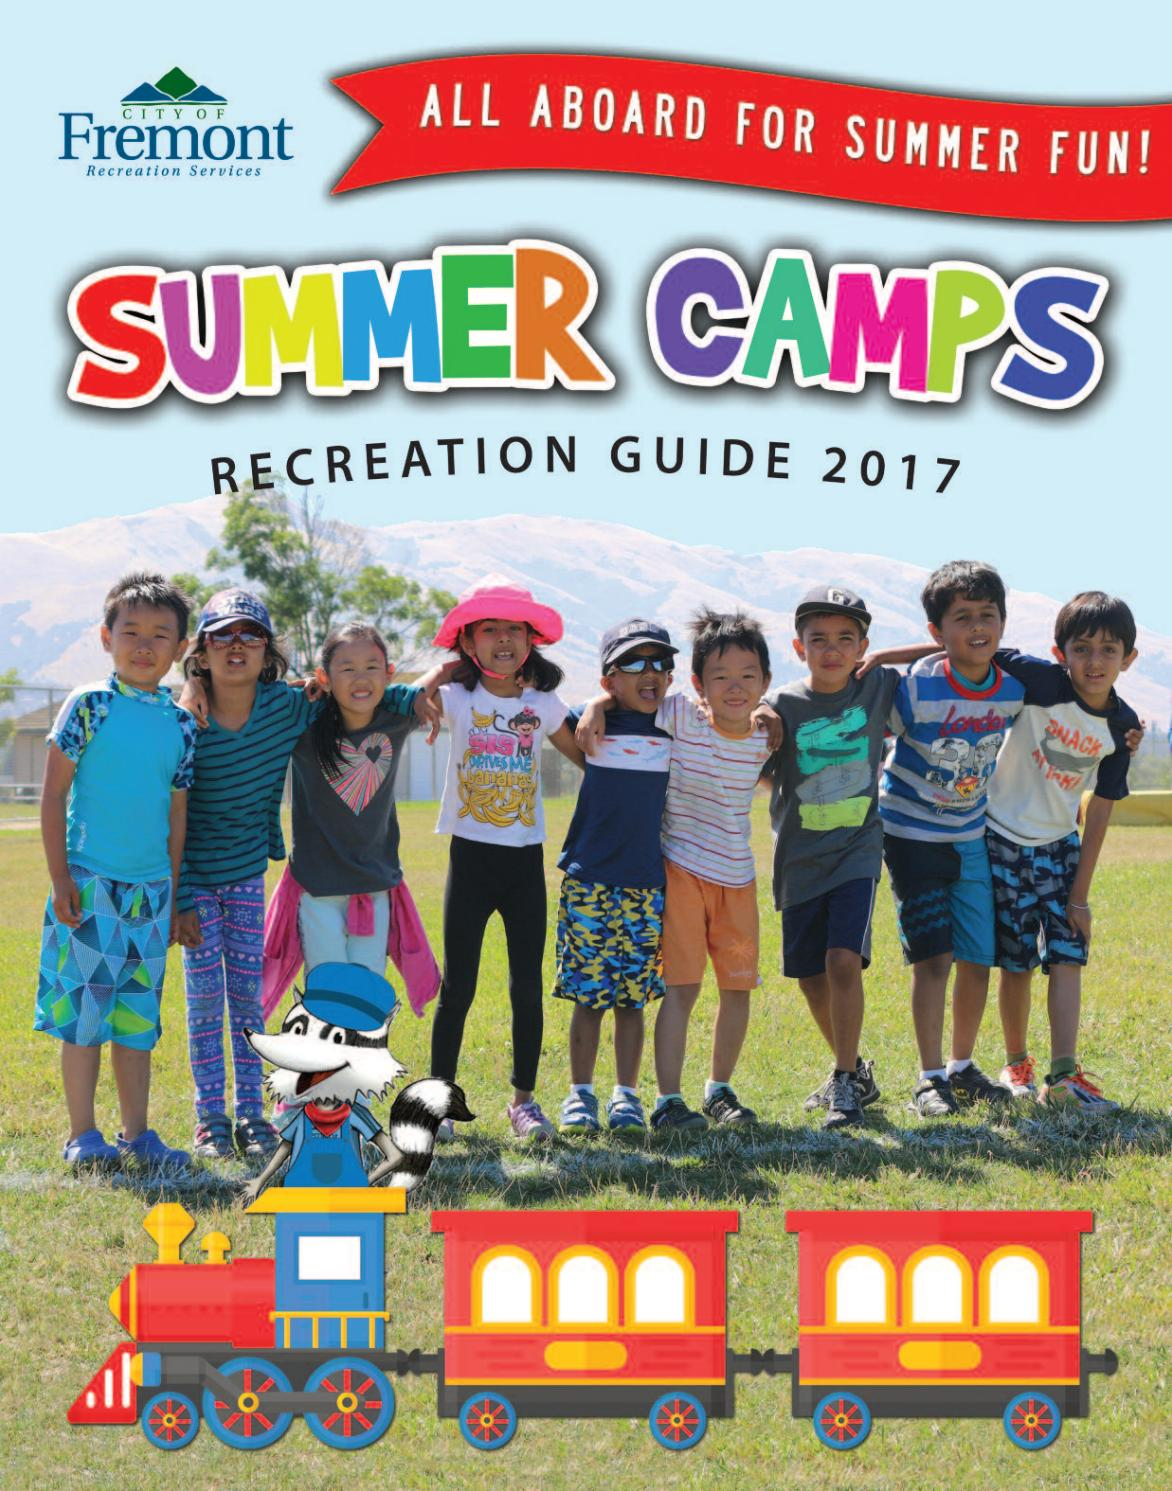 Summer camps recreation guide 2017 by city of fremont for Academie de cuisine summer camp